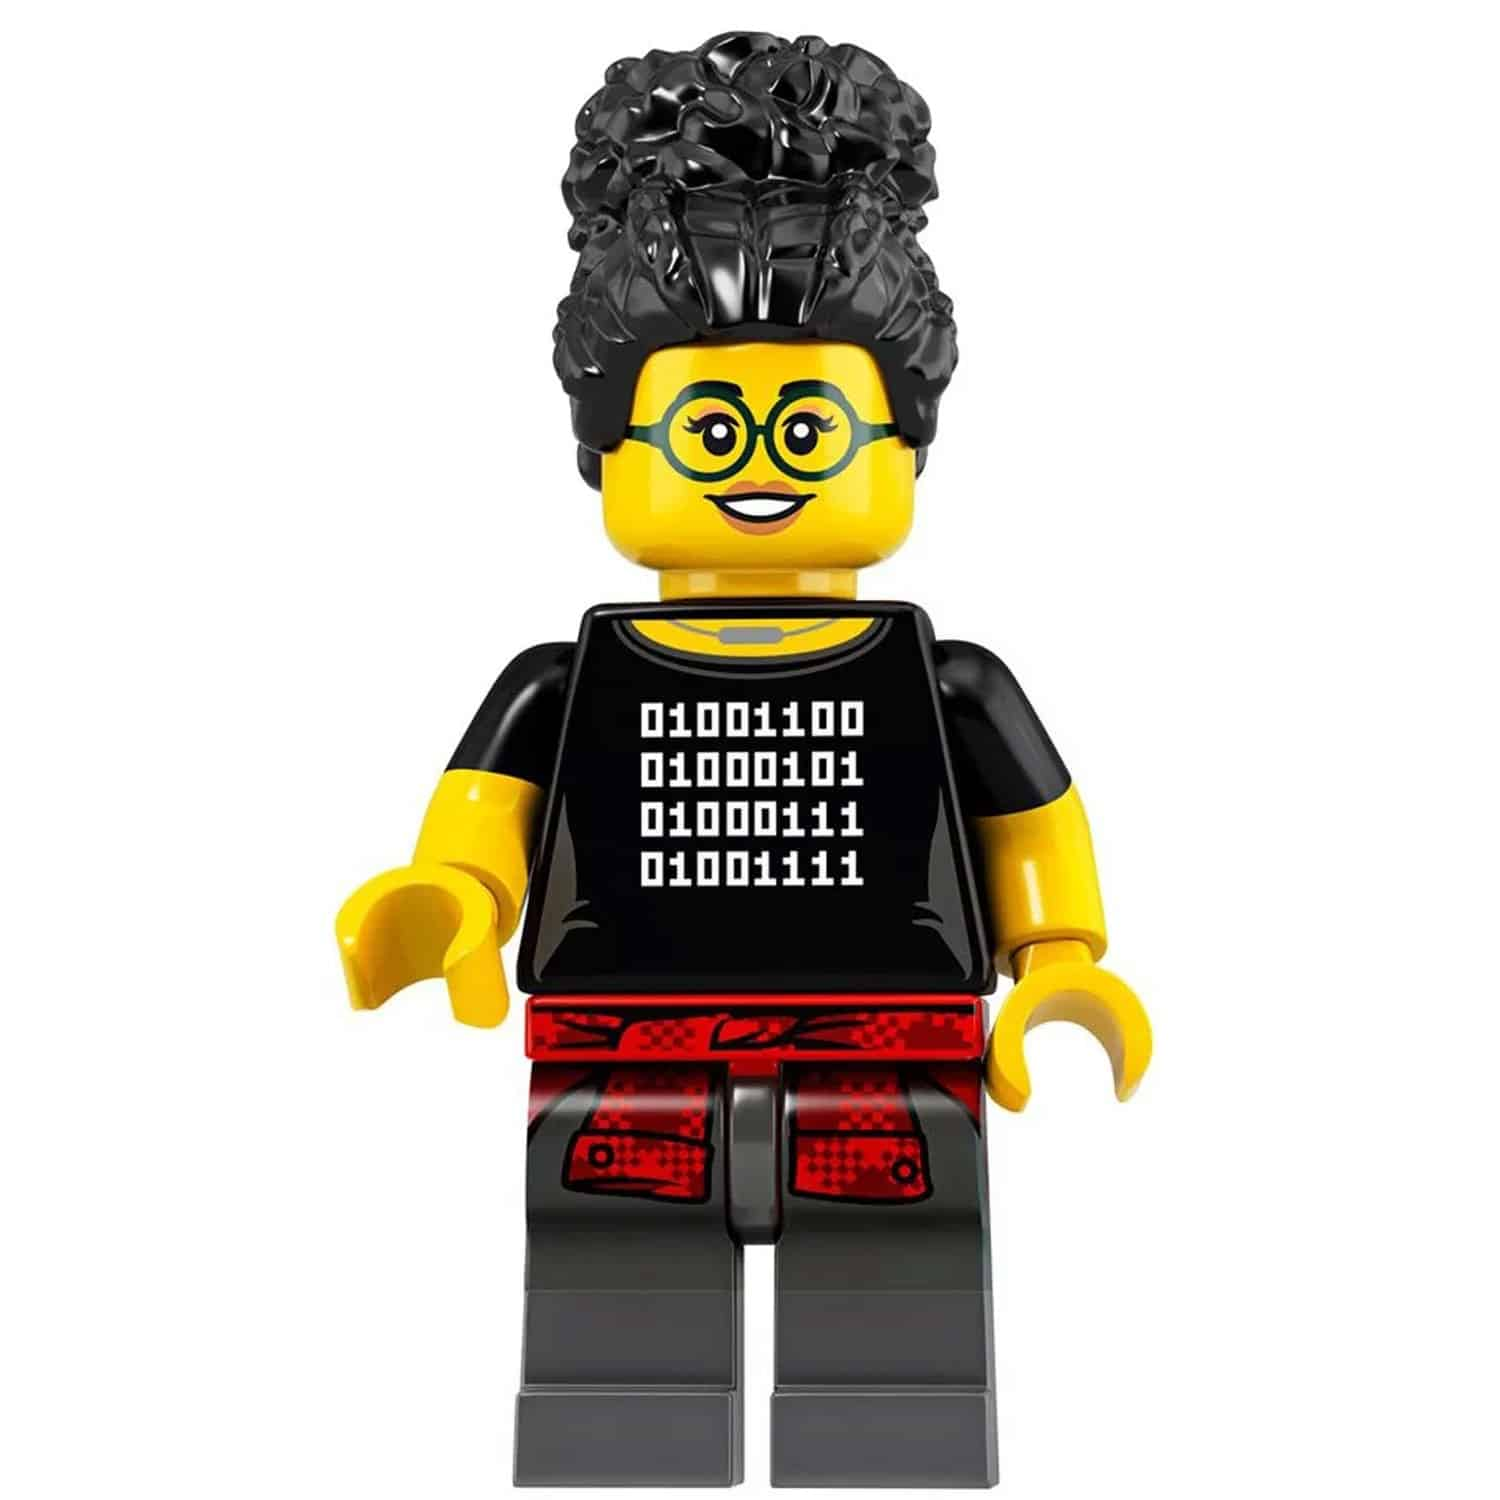 LEGO Coder Girl with Robot and Laptop – Series 19 CMF